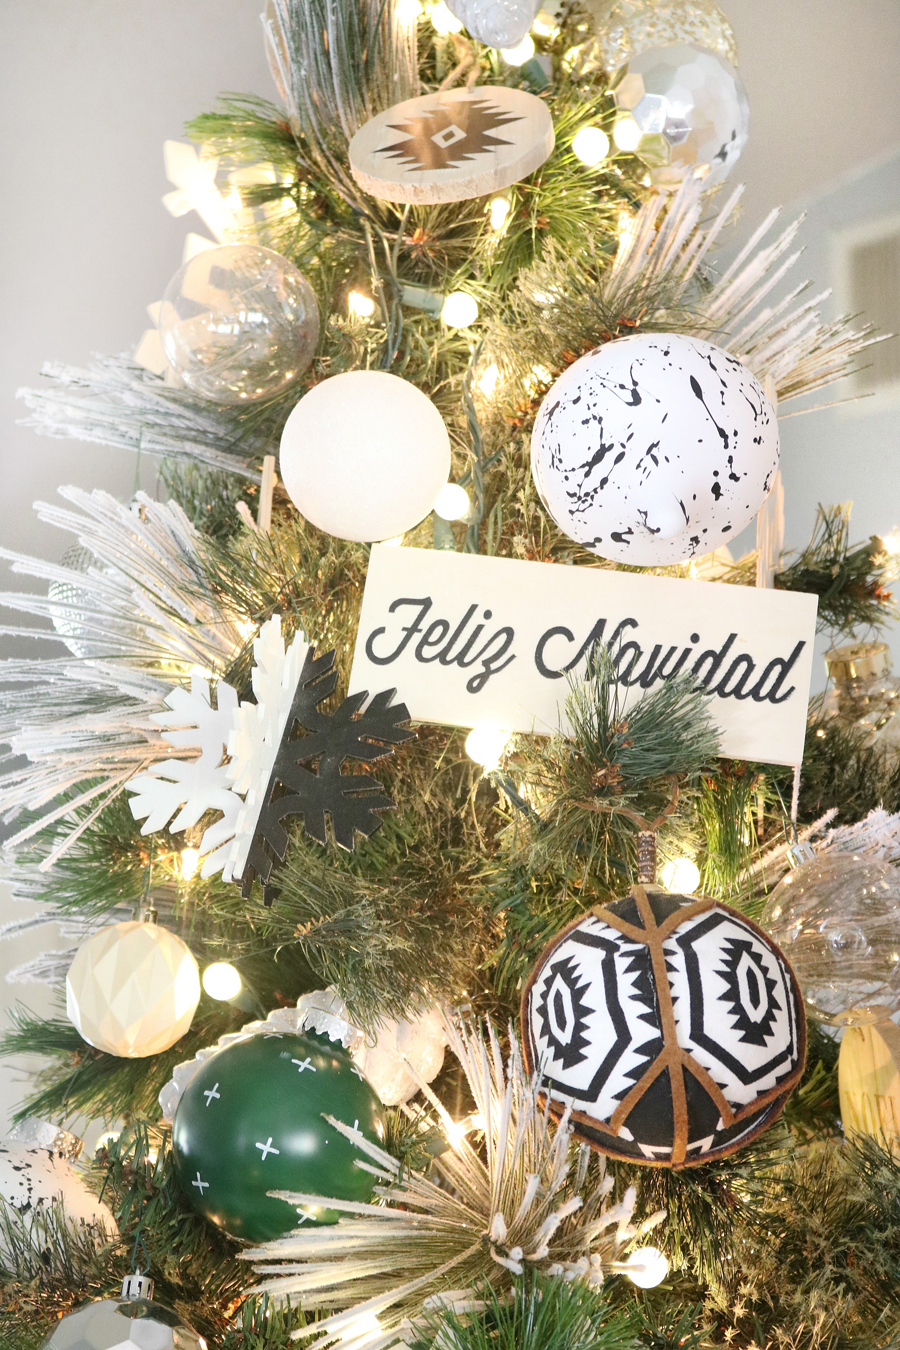 Black & White Modern Snowflake Christmas Tree Decor - Simple wood plaques with graphic Christmas sayings are perfect tree decor.